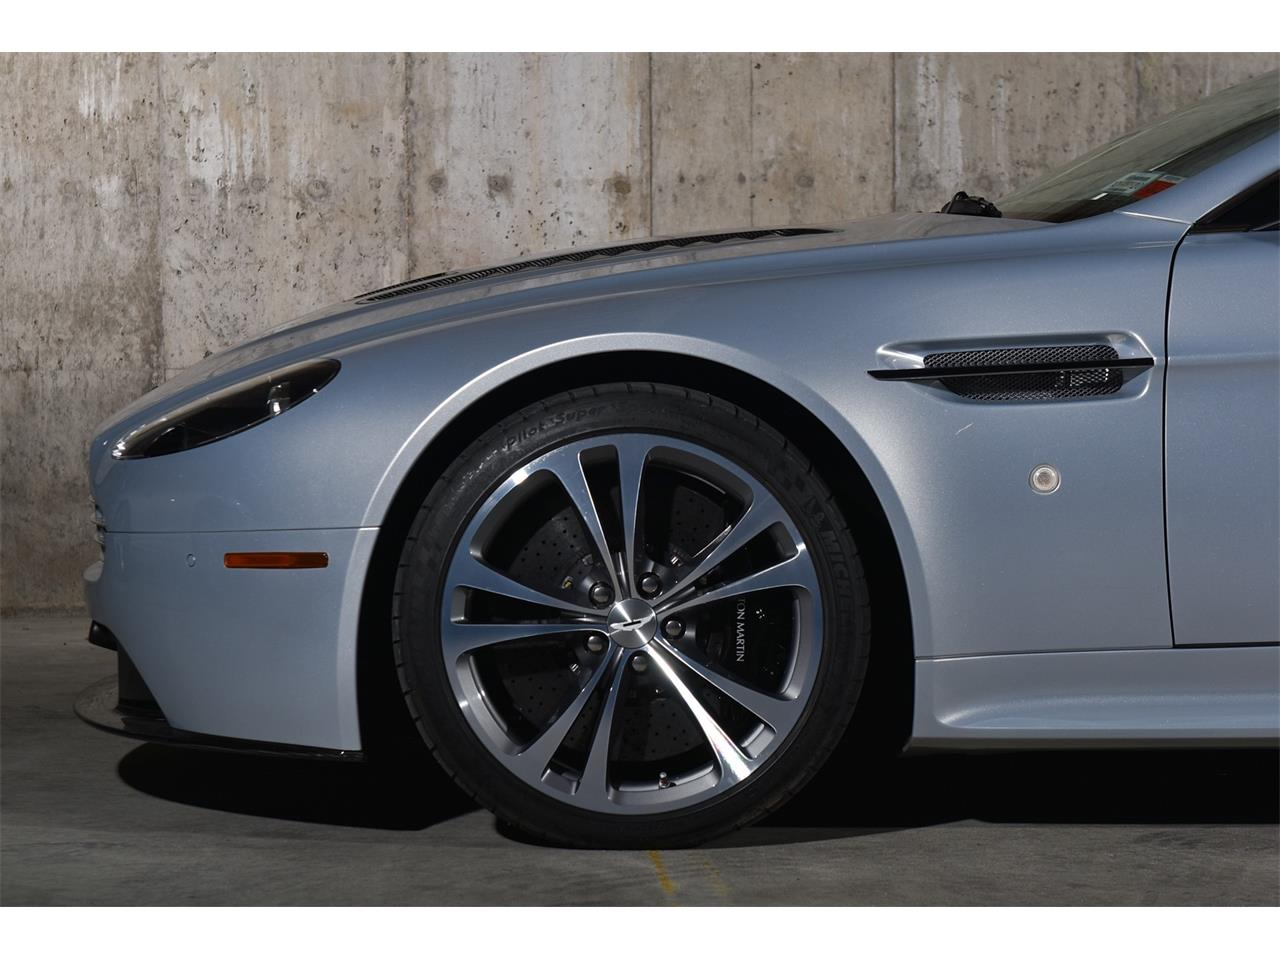 2011 Aston Martin Vantage (CC-1344407) for sale in Valley Stream, New York